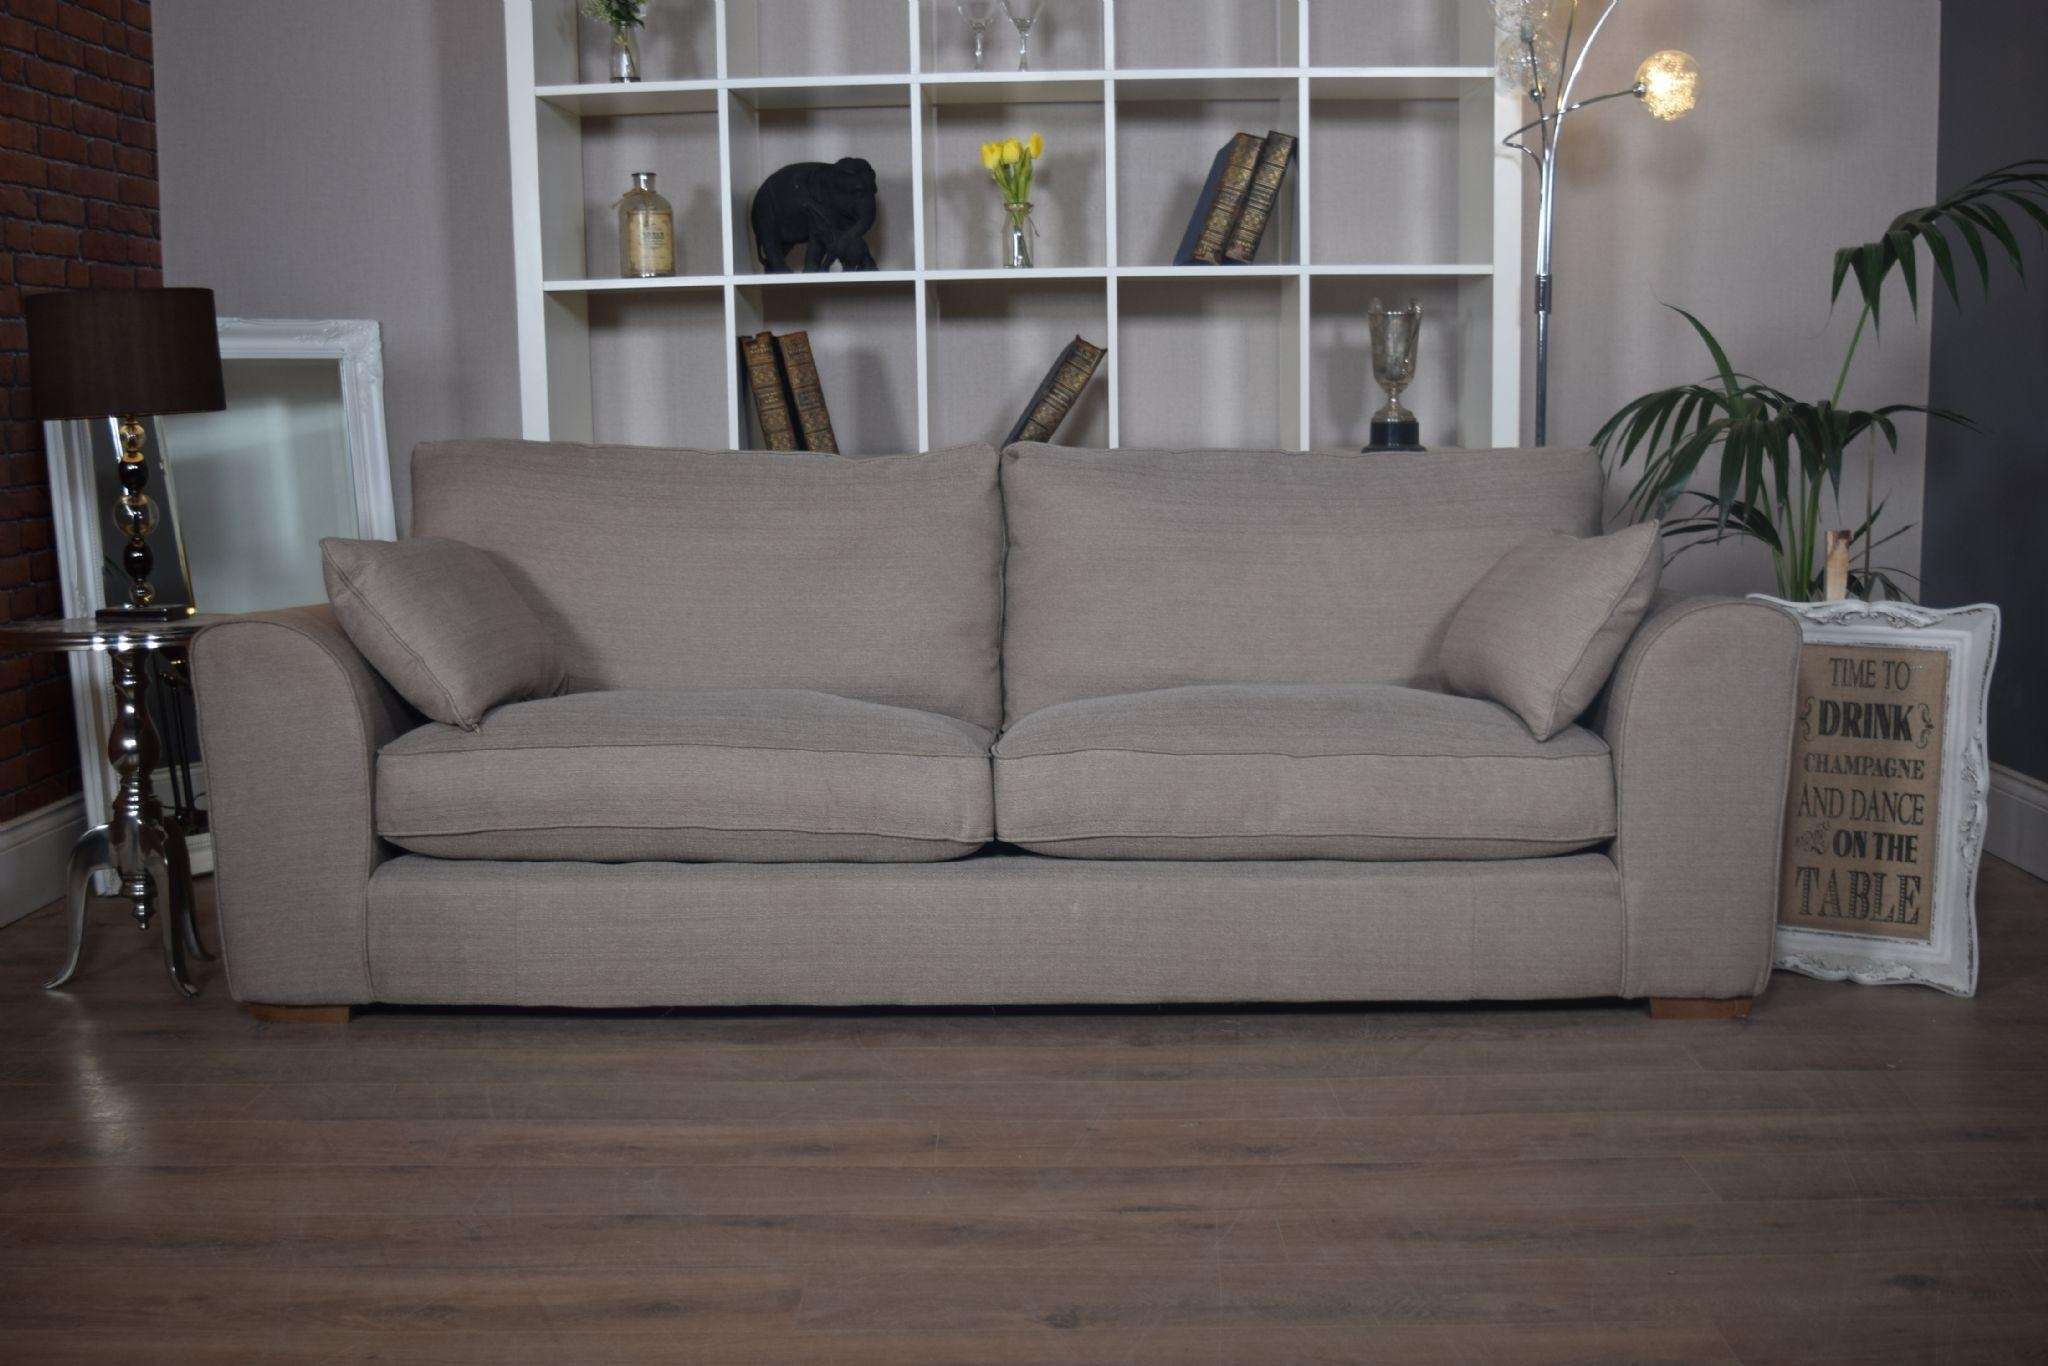 Set New Ashdown 3 Seater Sofa & Cuddle Chair Set – Beige Mink Regarding 3 Seater Sofa And Cuddle Chairs (Image 9 of 20)